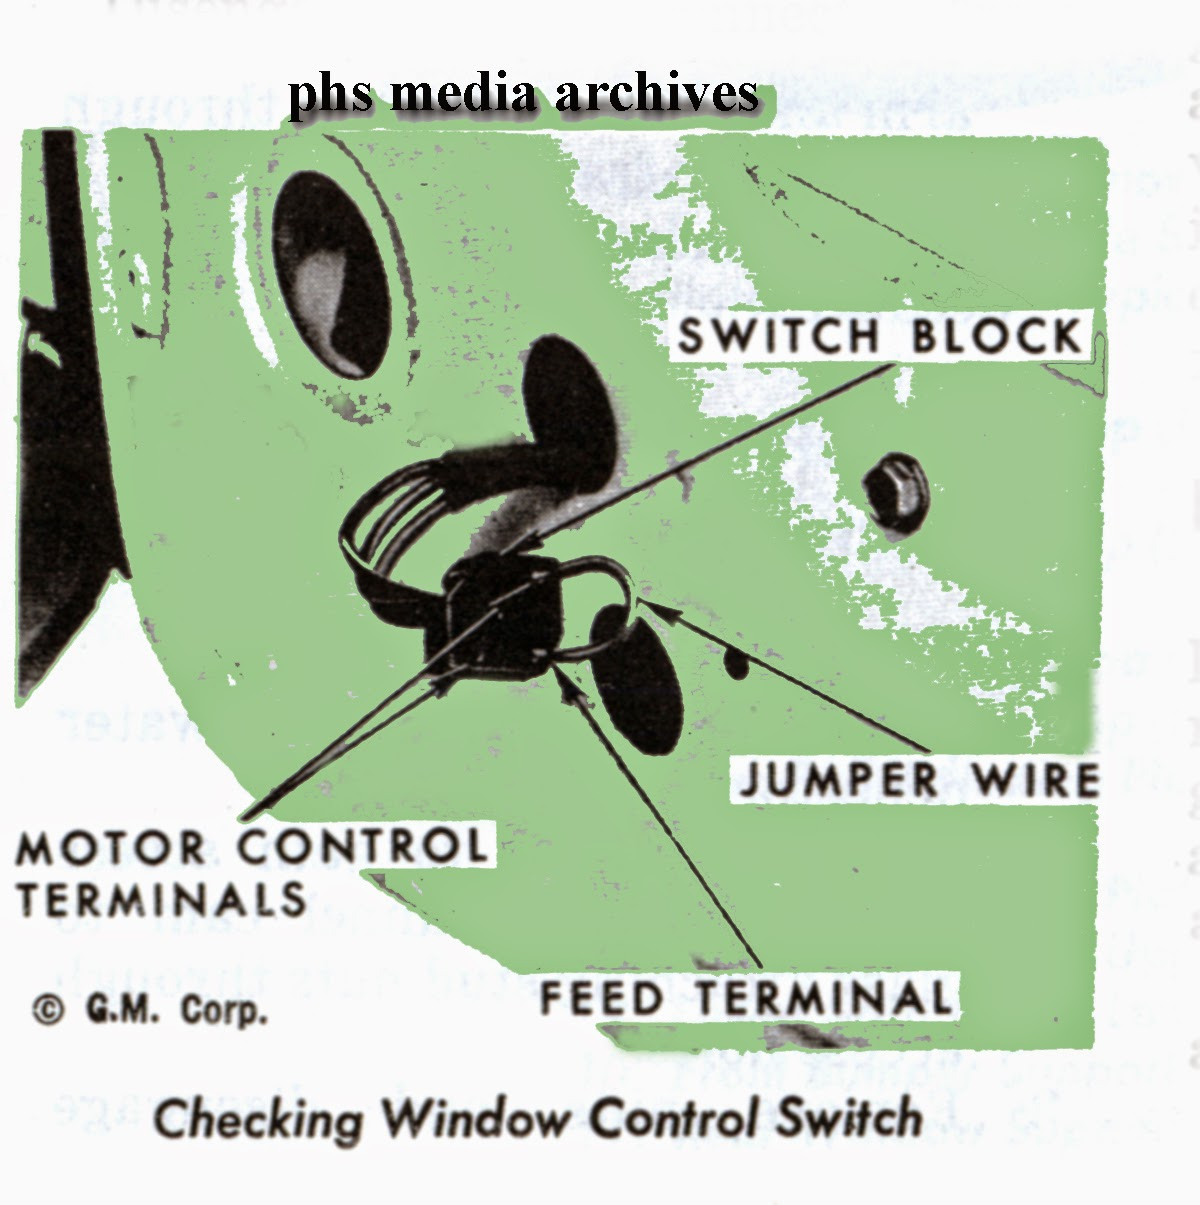 1967 Gm Power Window Wiring Diagram Content Resource Of 85 S10 Tech Files Troubleshooting And Fixing Windows 1968 1973 Rh Phscollectorcarworld Blogspot Com Eclipse Relay